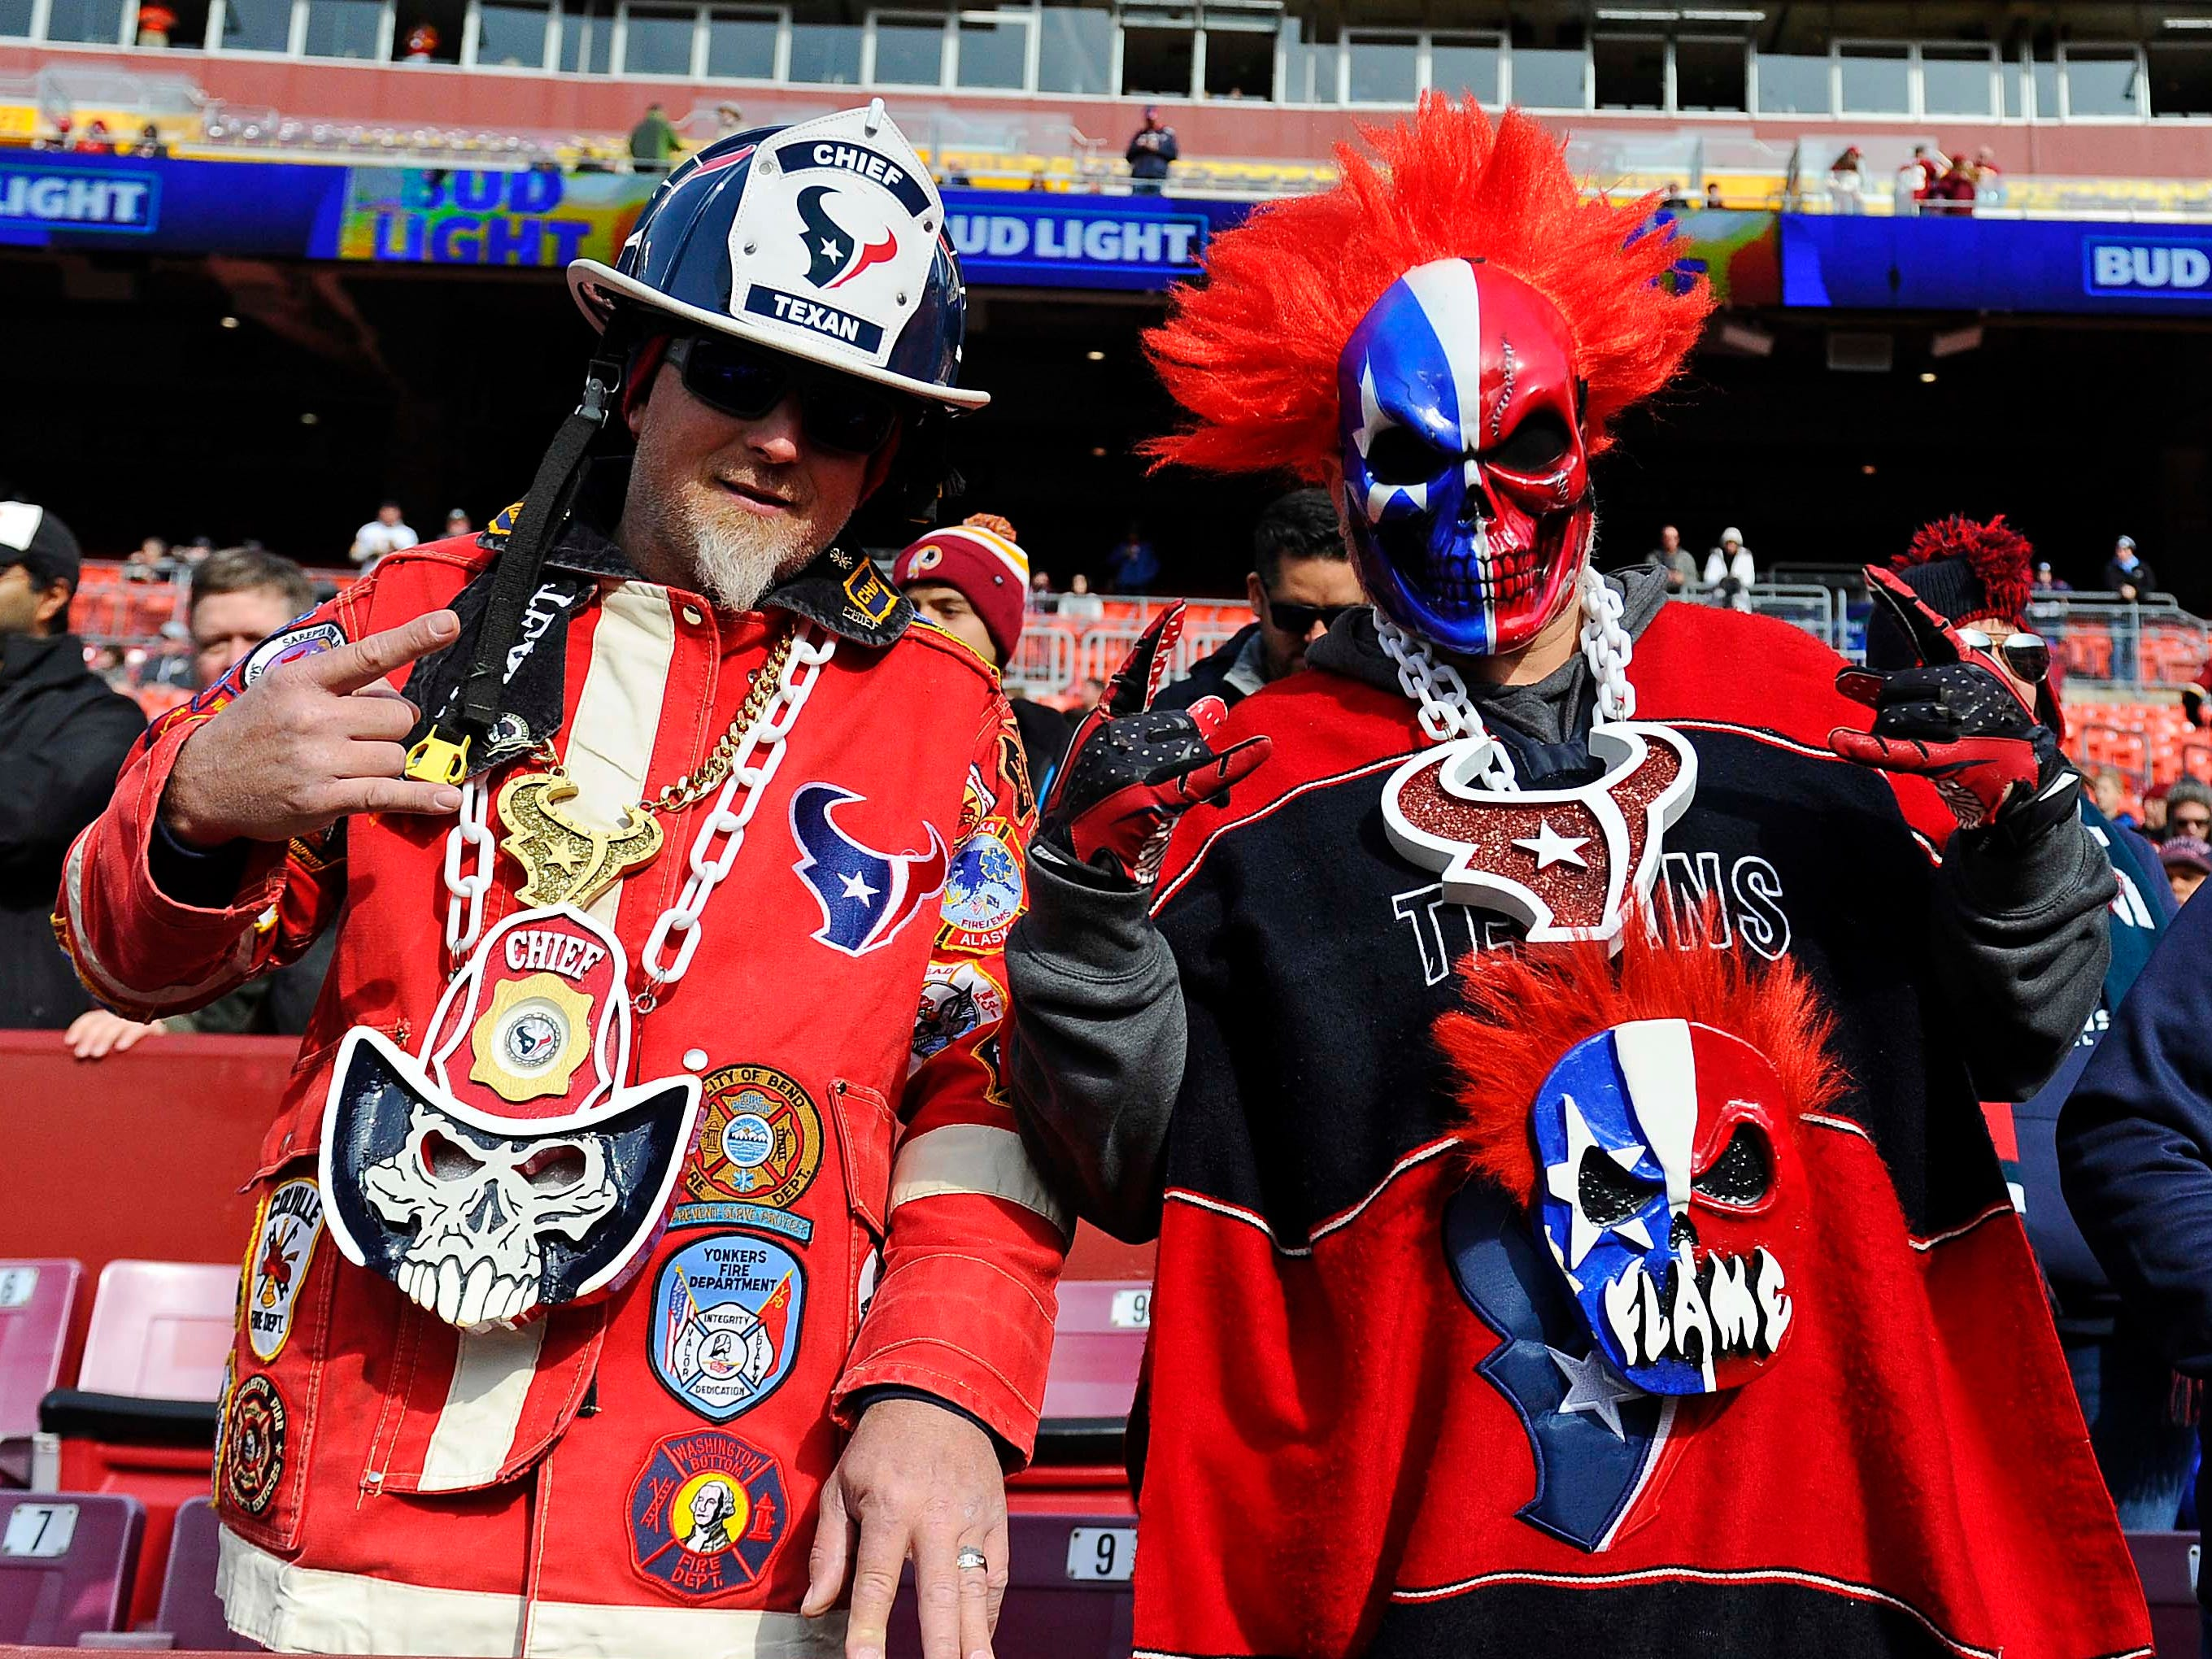 Houston Texans fans before the game against the Washington Redskins at FedEx Field.